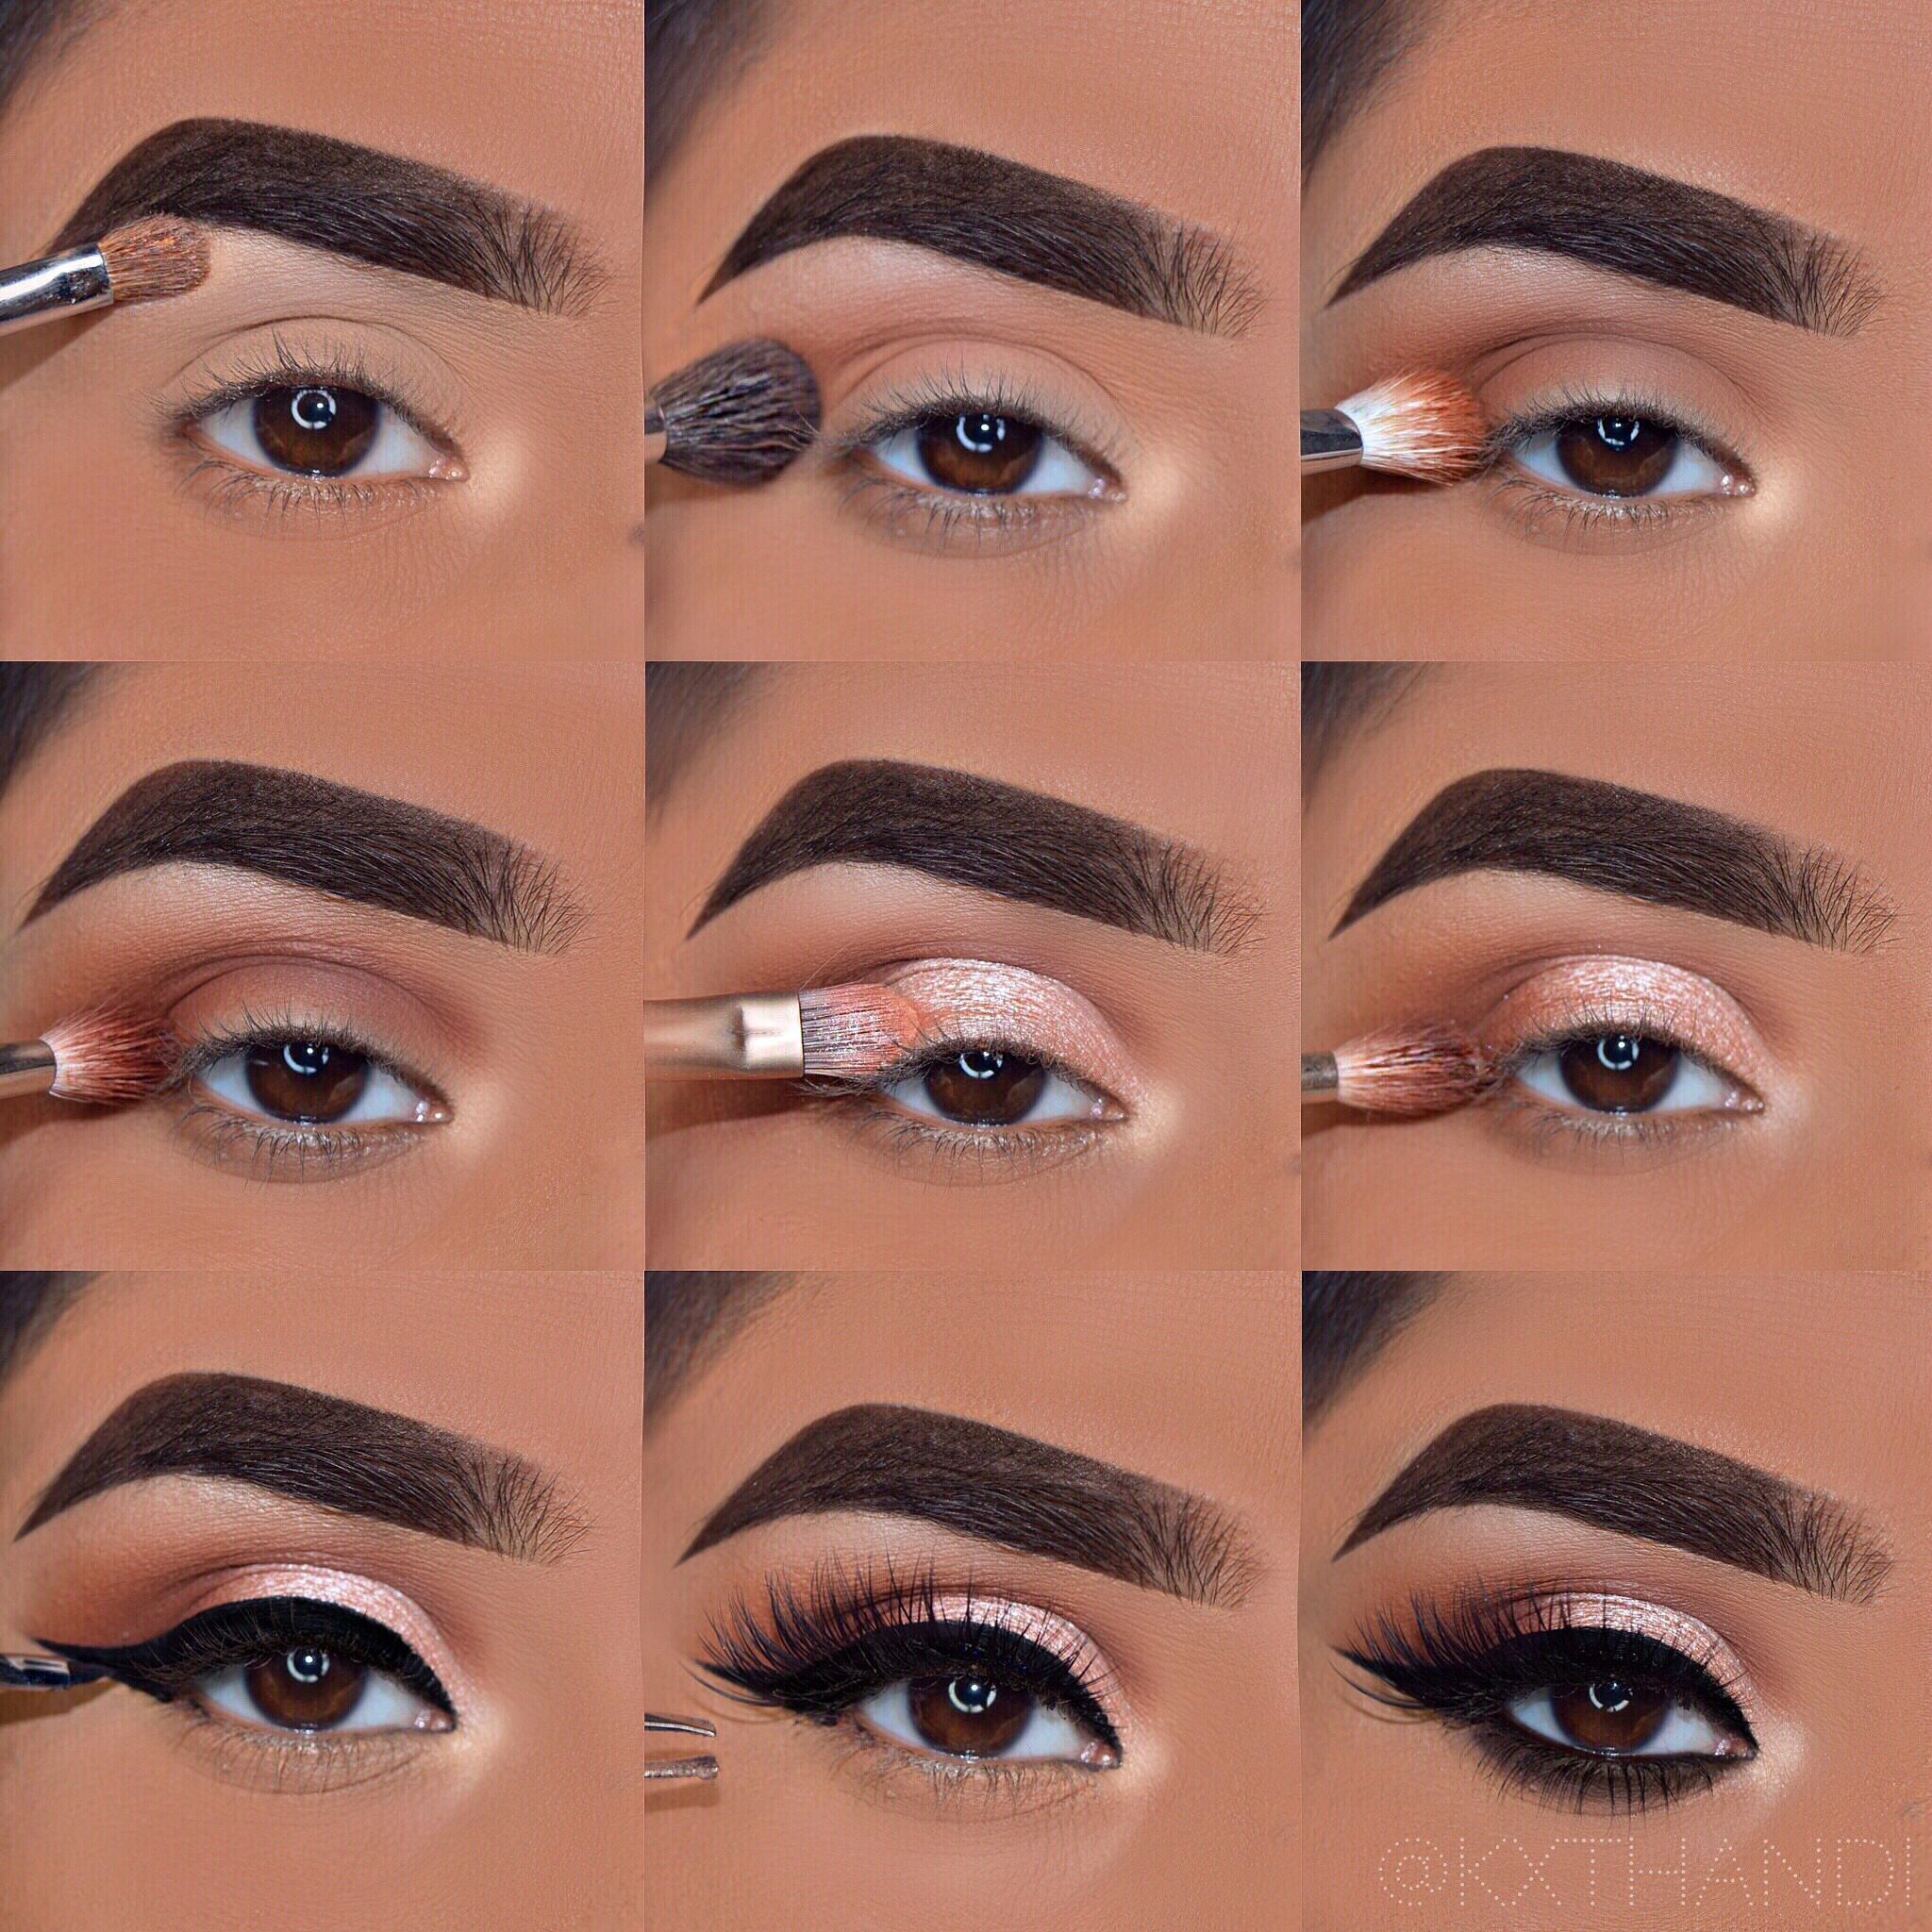 Makeup Step By Step Tutorial Everyday Glam -   11 makeup Glam step by step ideas